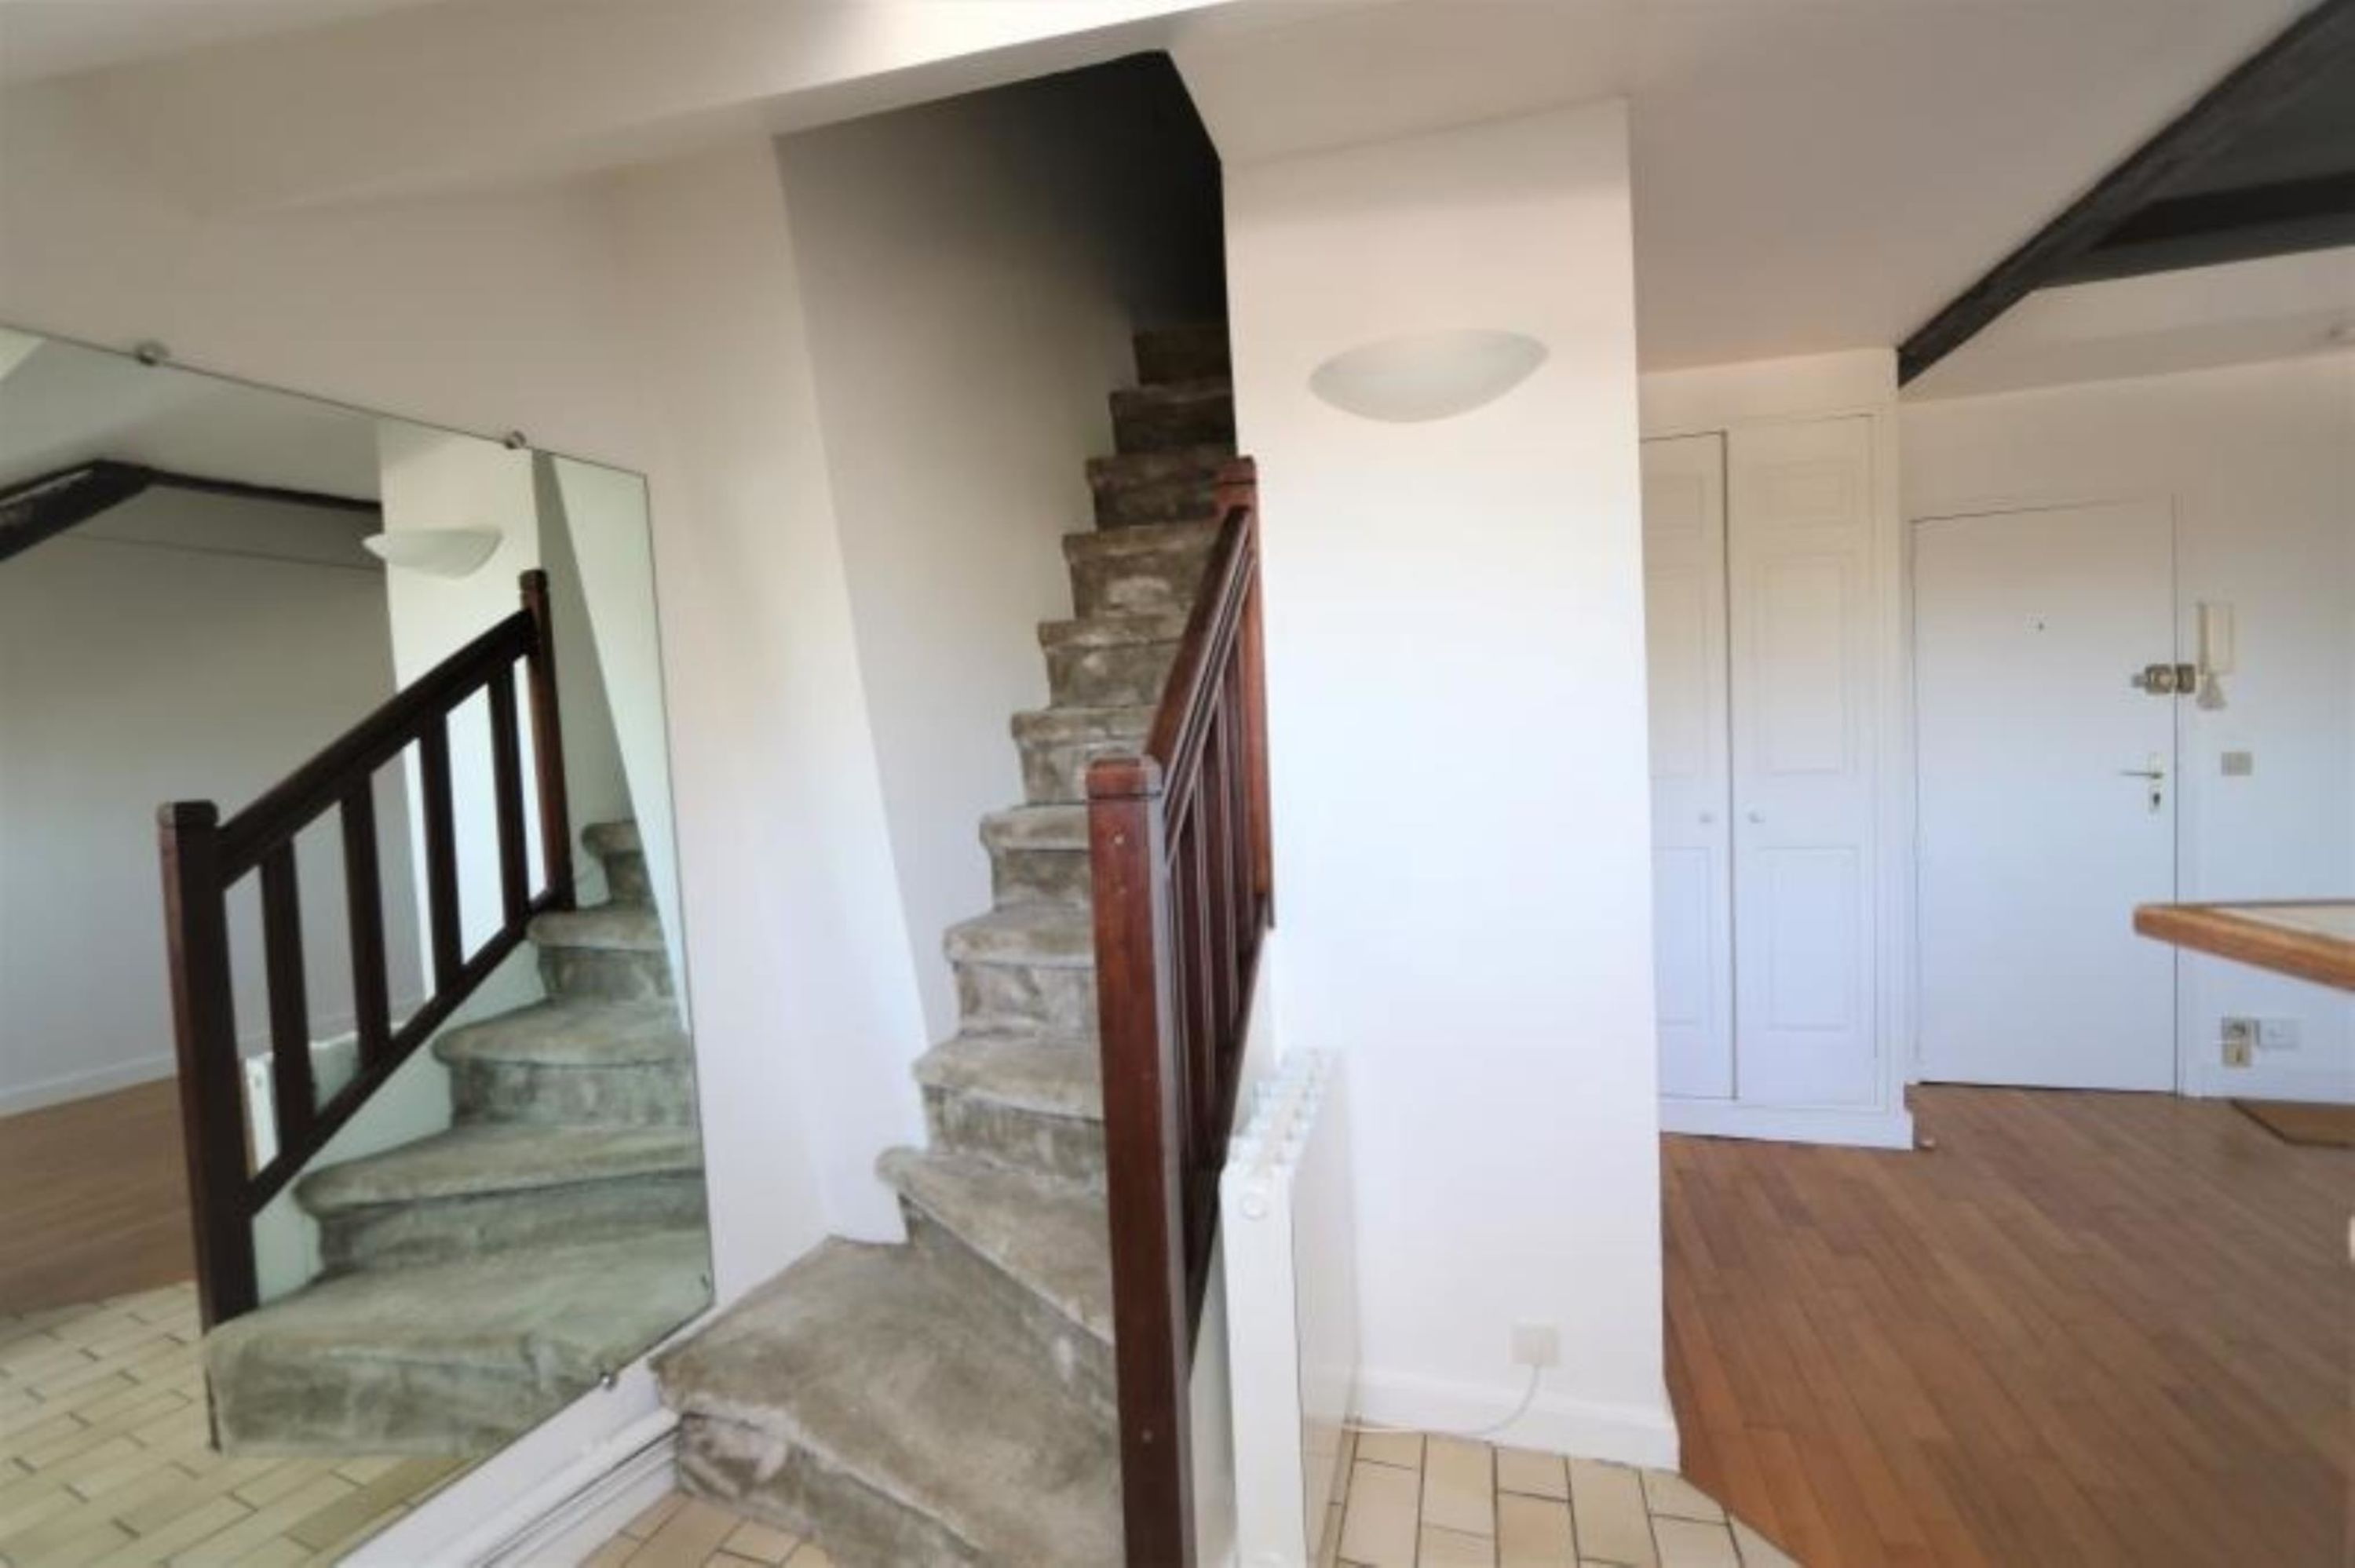 agence immobilière sevres 92 le chesnay 78 achat vente location appartement maison immobilier LMHT ANF DYQQTEFW